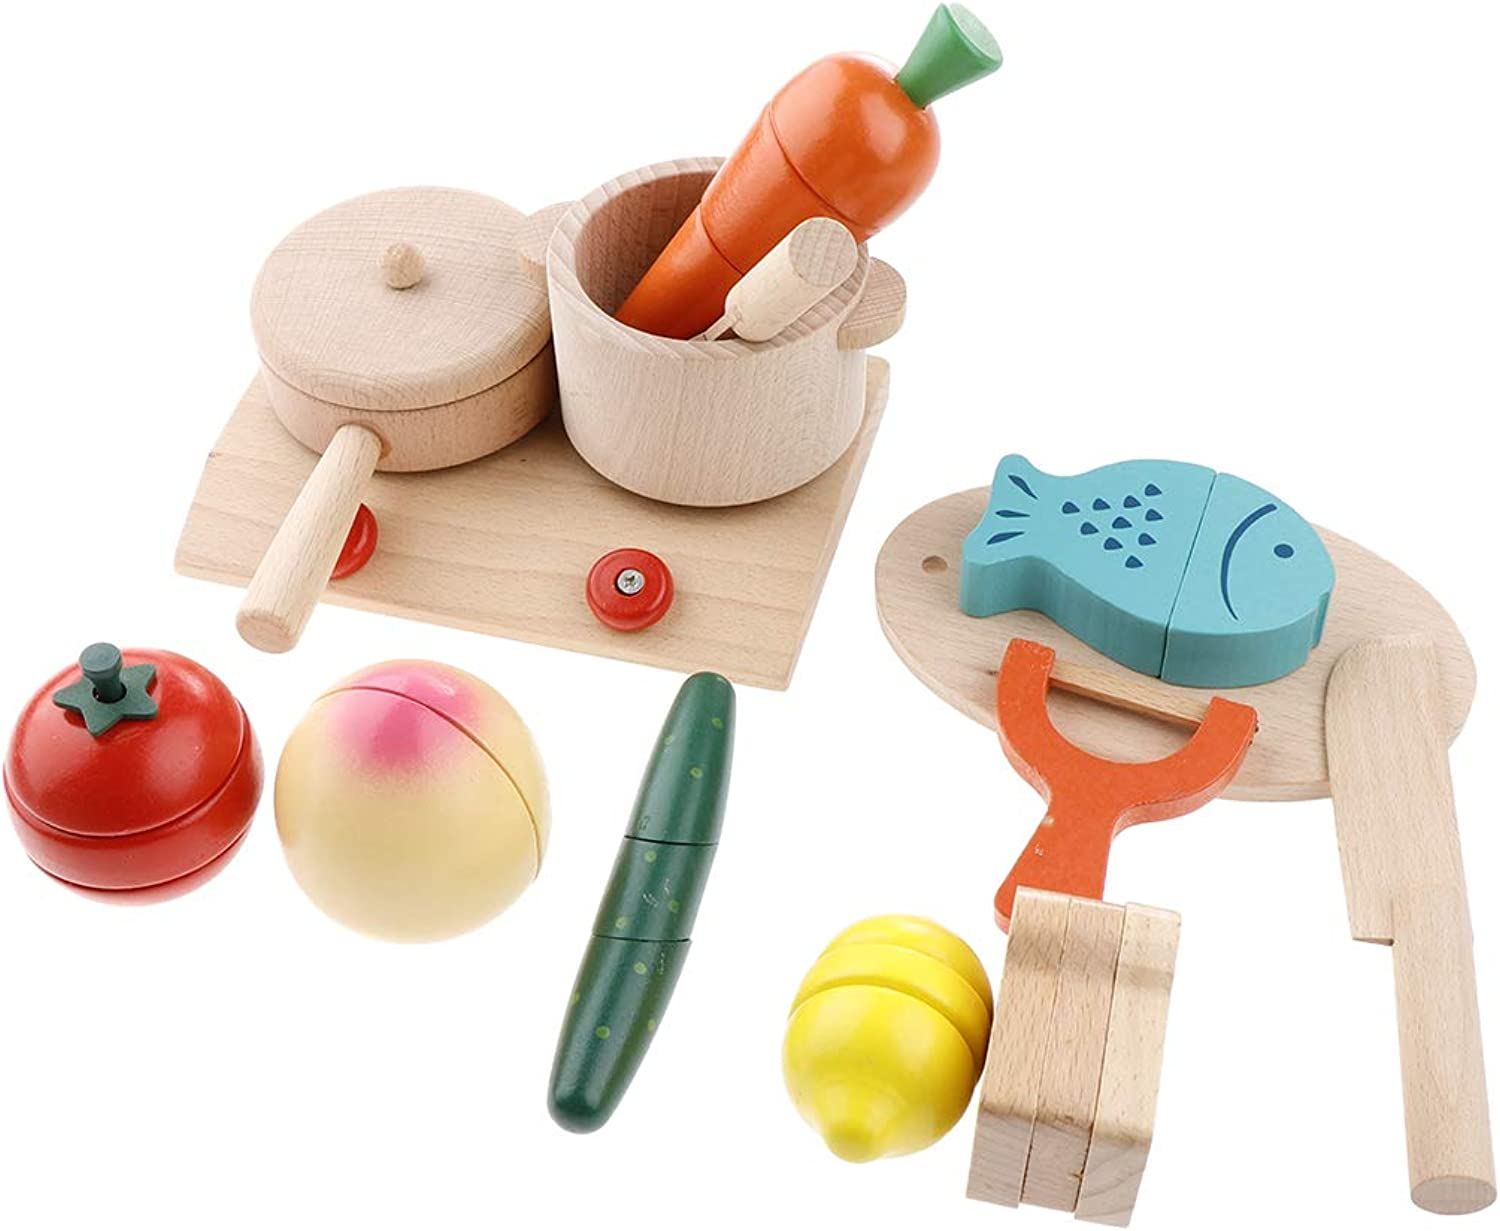 SM SunniMix Wooden Pretend Play Kitchen Toy Set, Cooking Bench, pan, stockpot, Cutting Board, Carred, Fish and Other Accessories, Kids Early Educational Toy